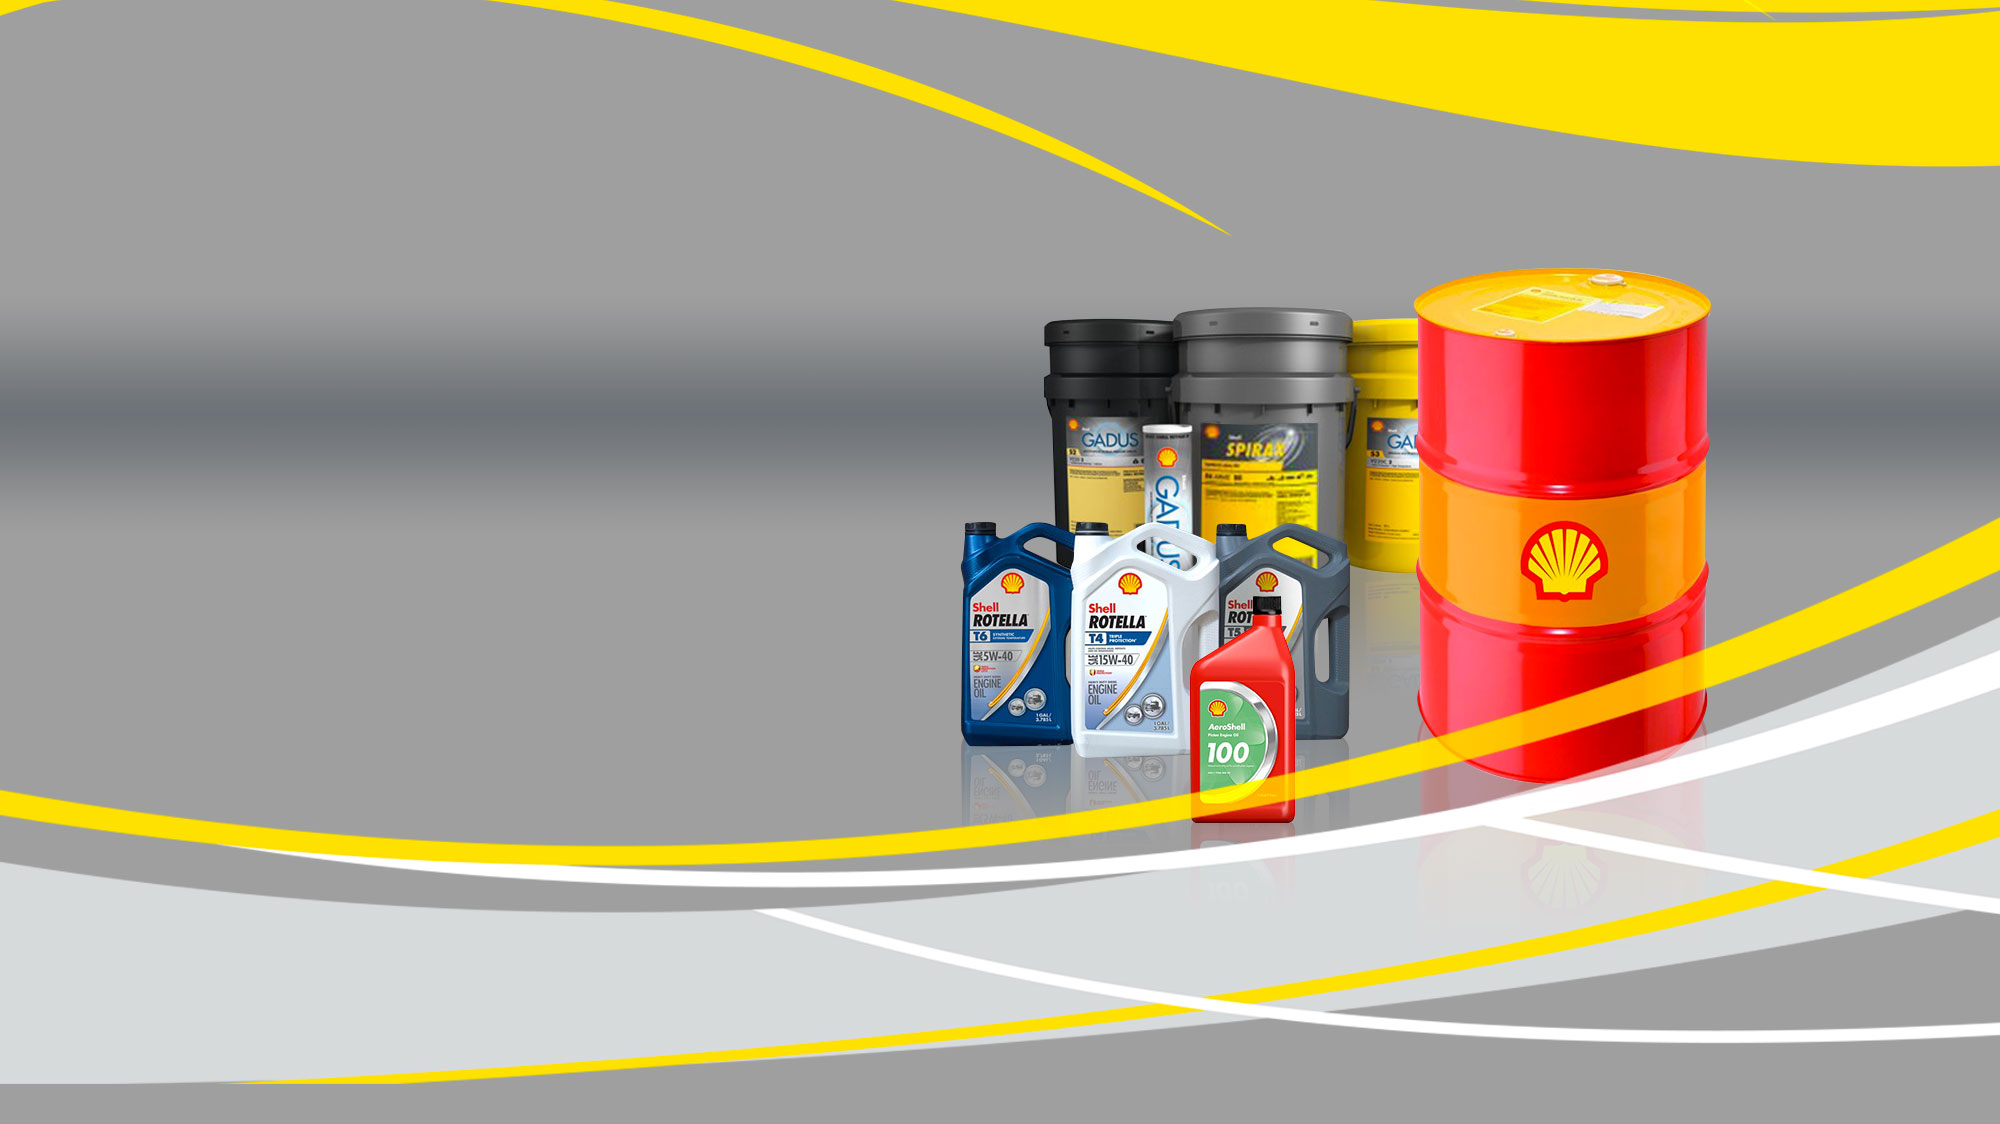 Authorized Shell lubricant distributor